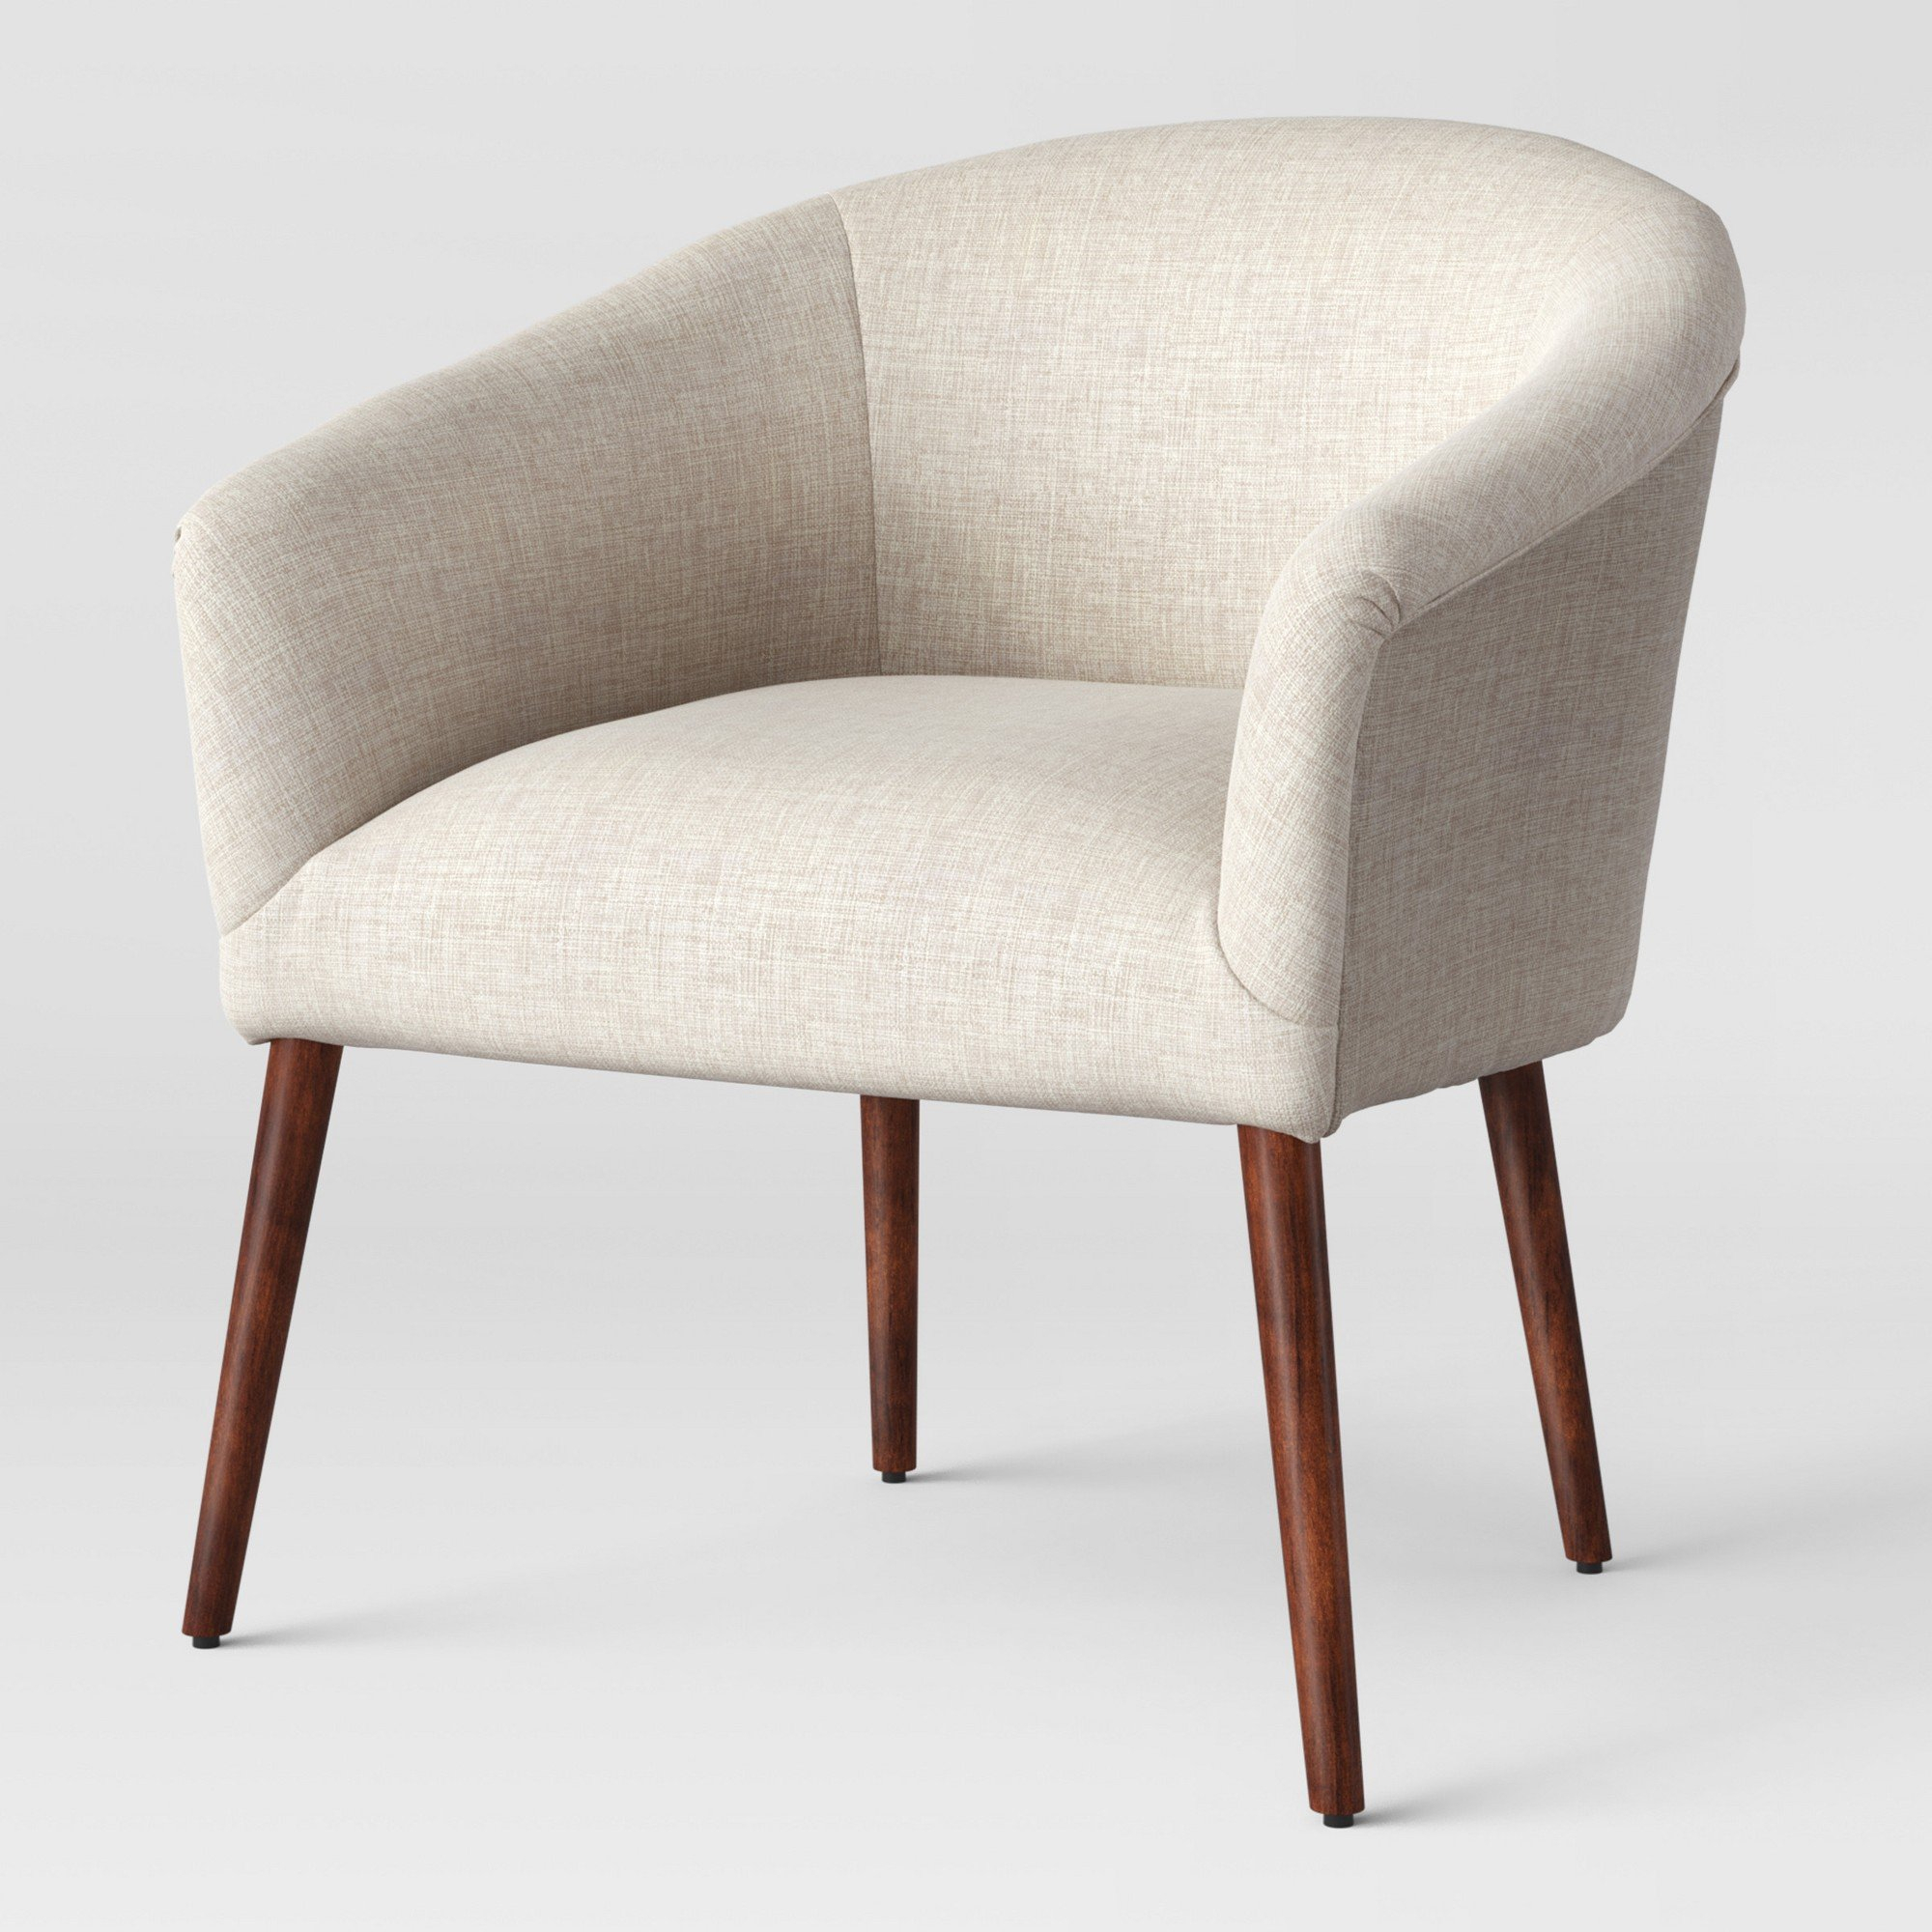 Pomeroy Barrel Chair Roma Elephant – Project 62 – Target For Leppert Armchairs (View 14 of 15)